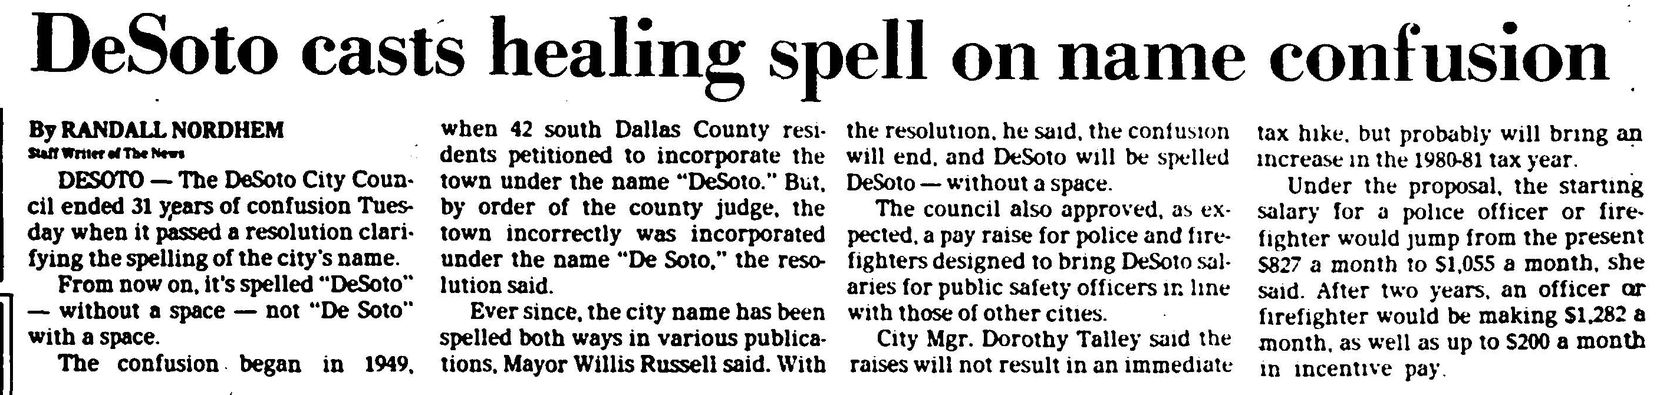 Clip from Feb. 20, 1980 from The Dallas Morning News.